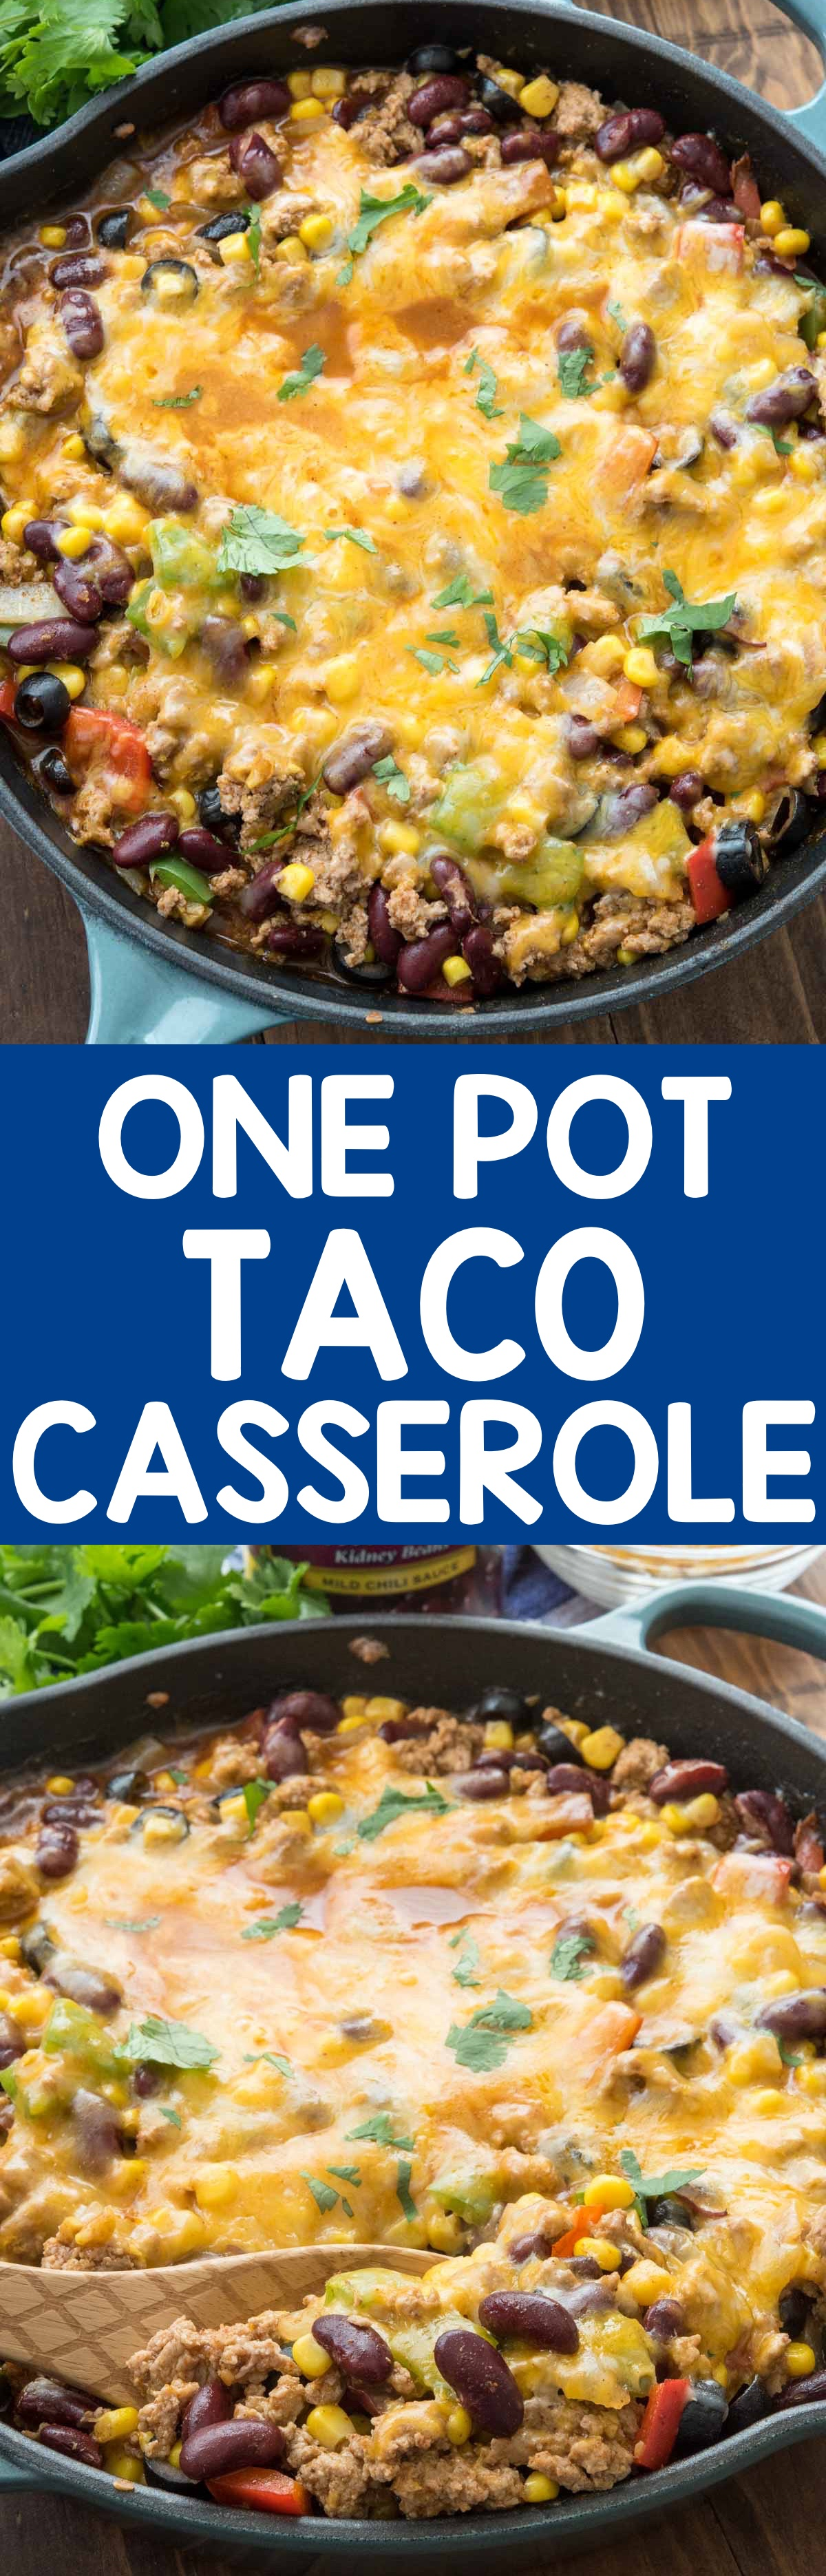 One Pot Taco Casserole is an easy weeknight meal! It's the perfect amount of spicy with ground turkey, chili beans, taco seasoning, and lots of cheese! We loved this meal and we ate it for leftovers with chips as a dip.